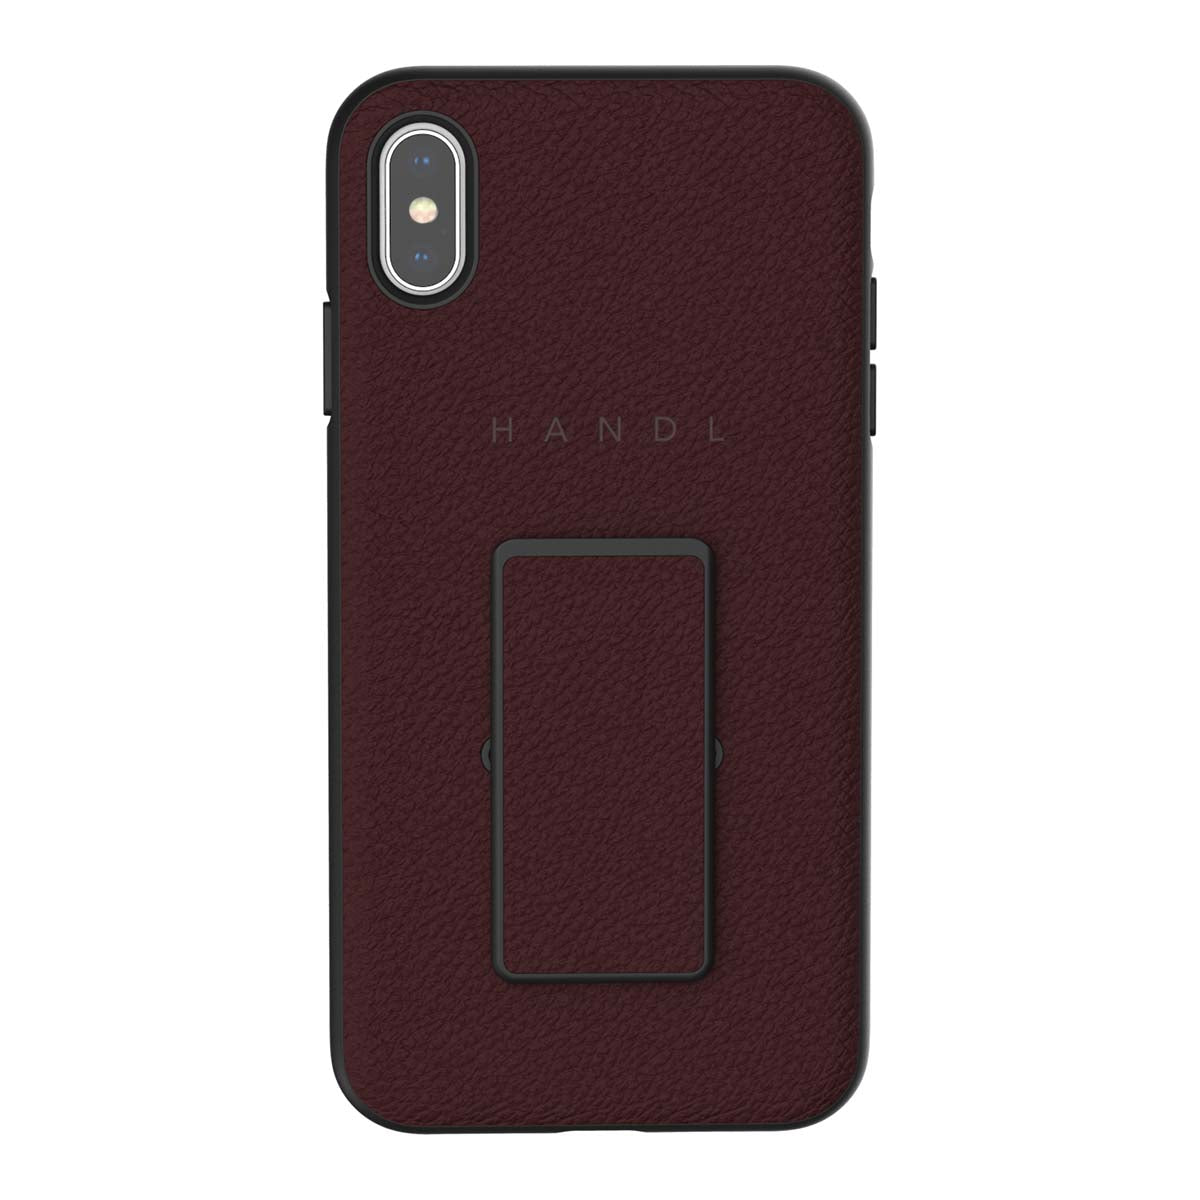 HANDL_iPhoneXsMAX_PEBBLE_LEATHER_MERLOT.77.jpg